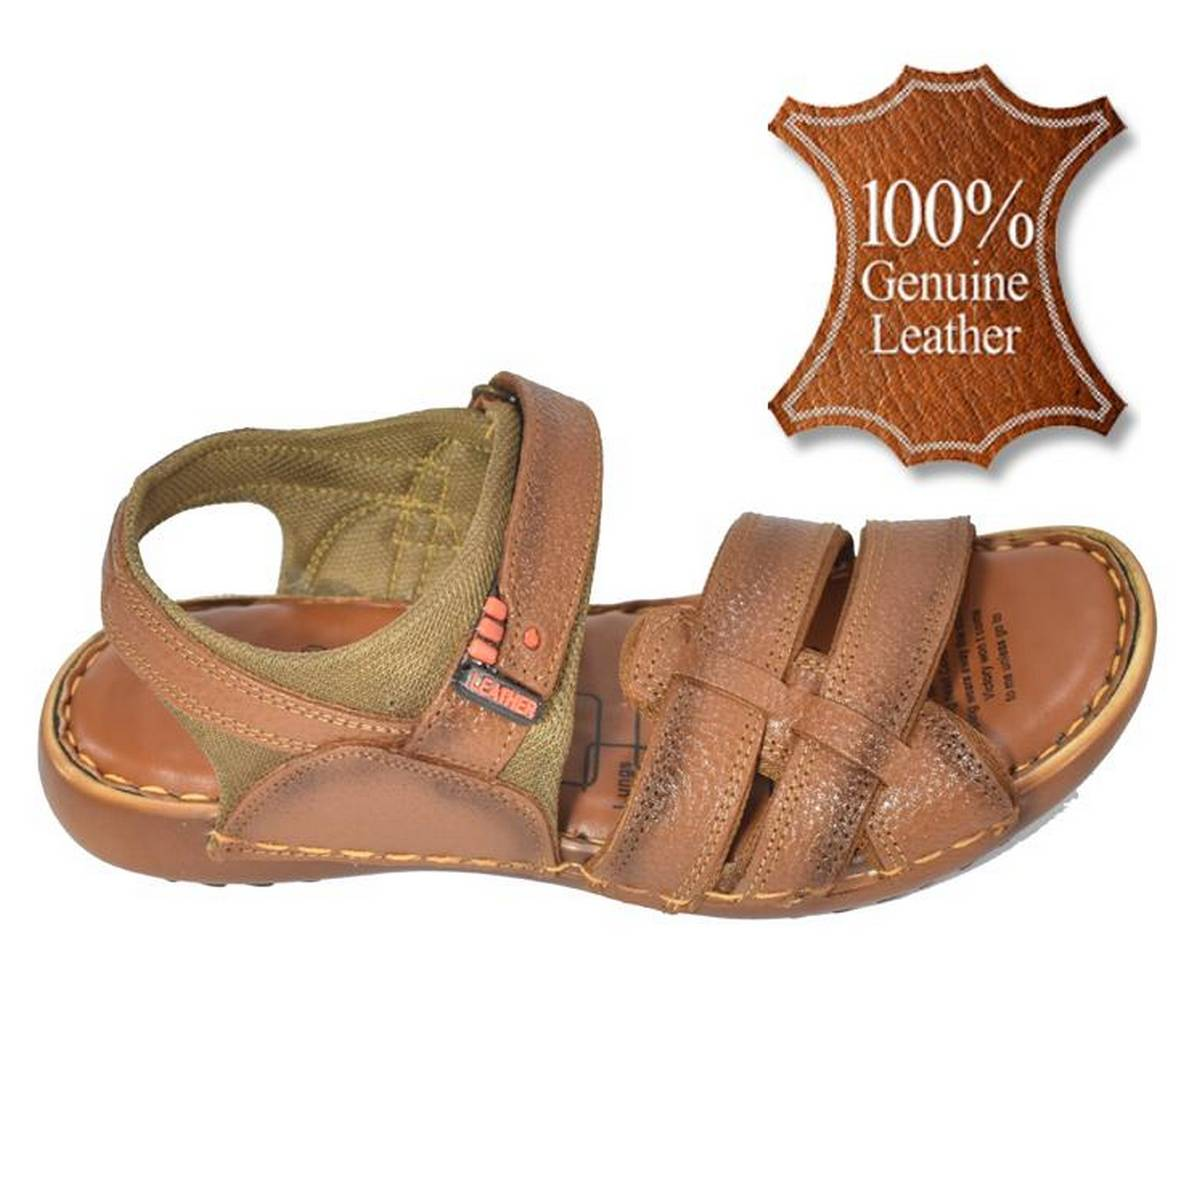 Leather Sandal For Men  (100% Pure Leather)